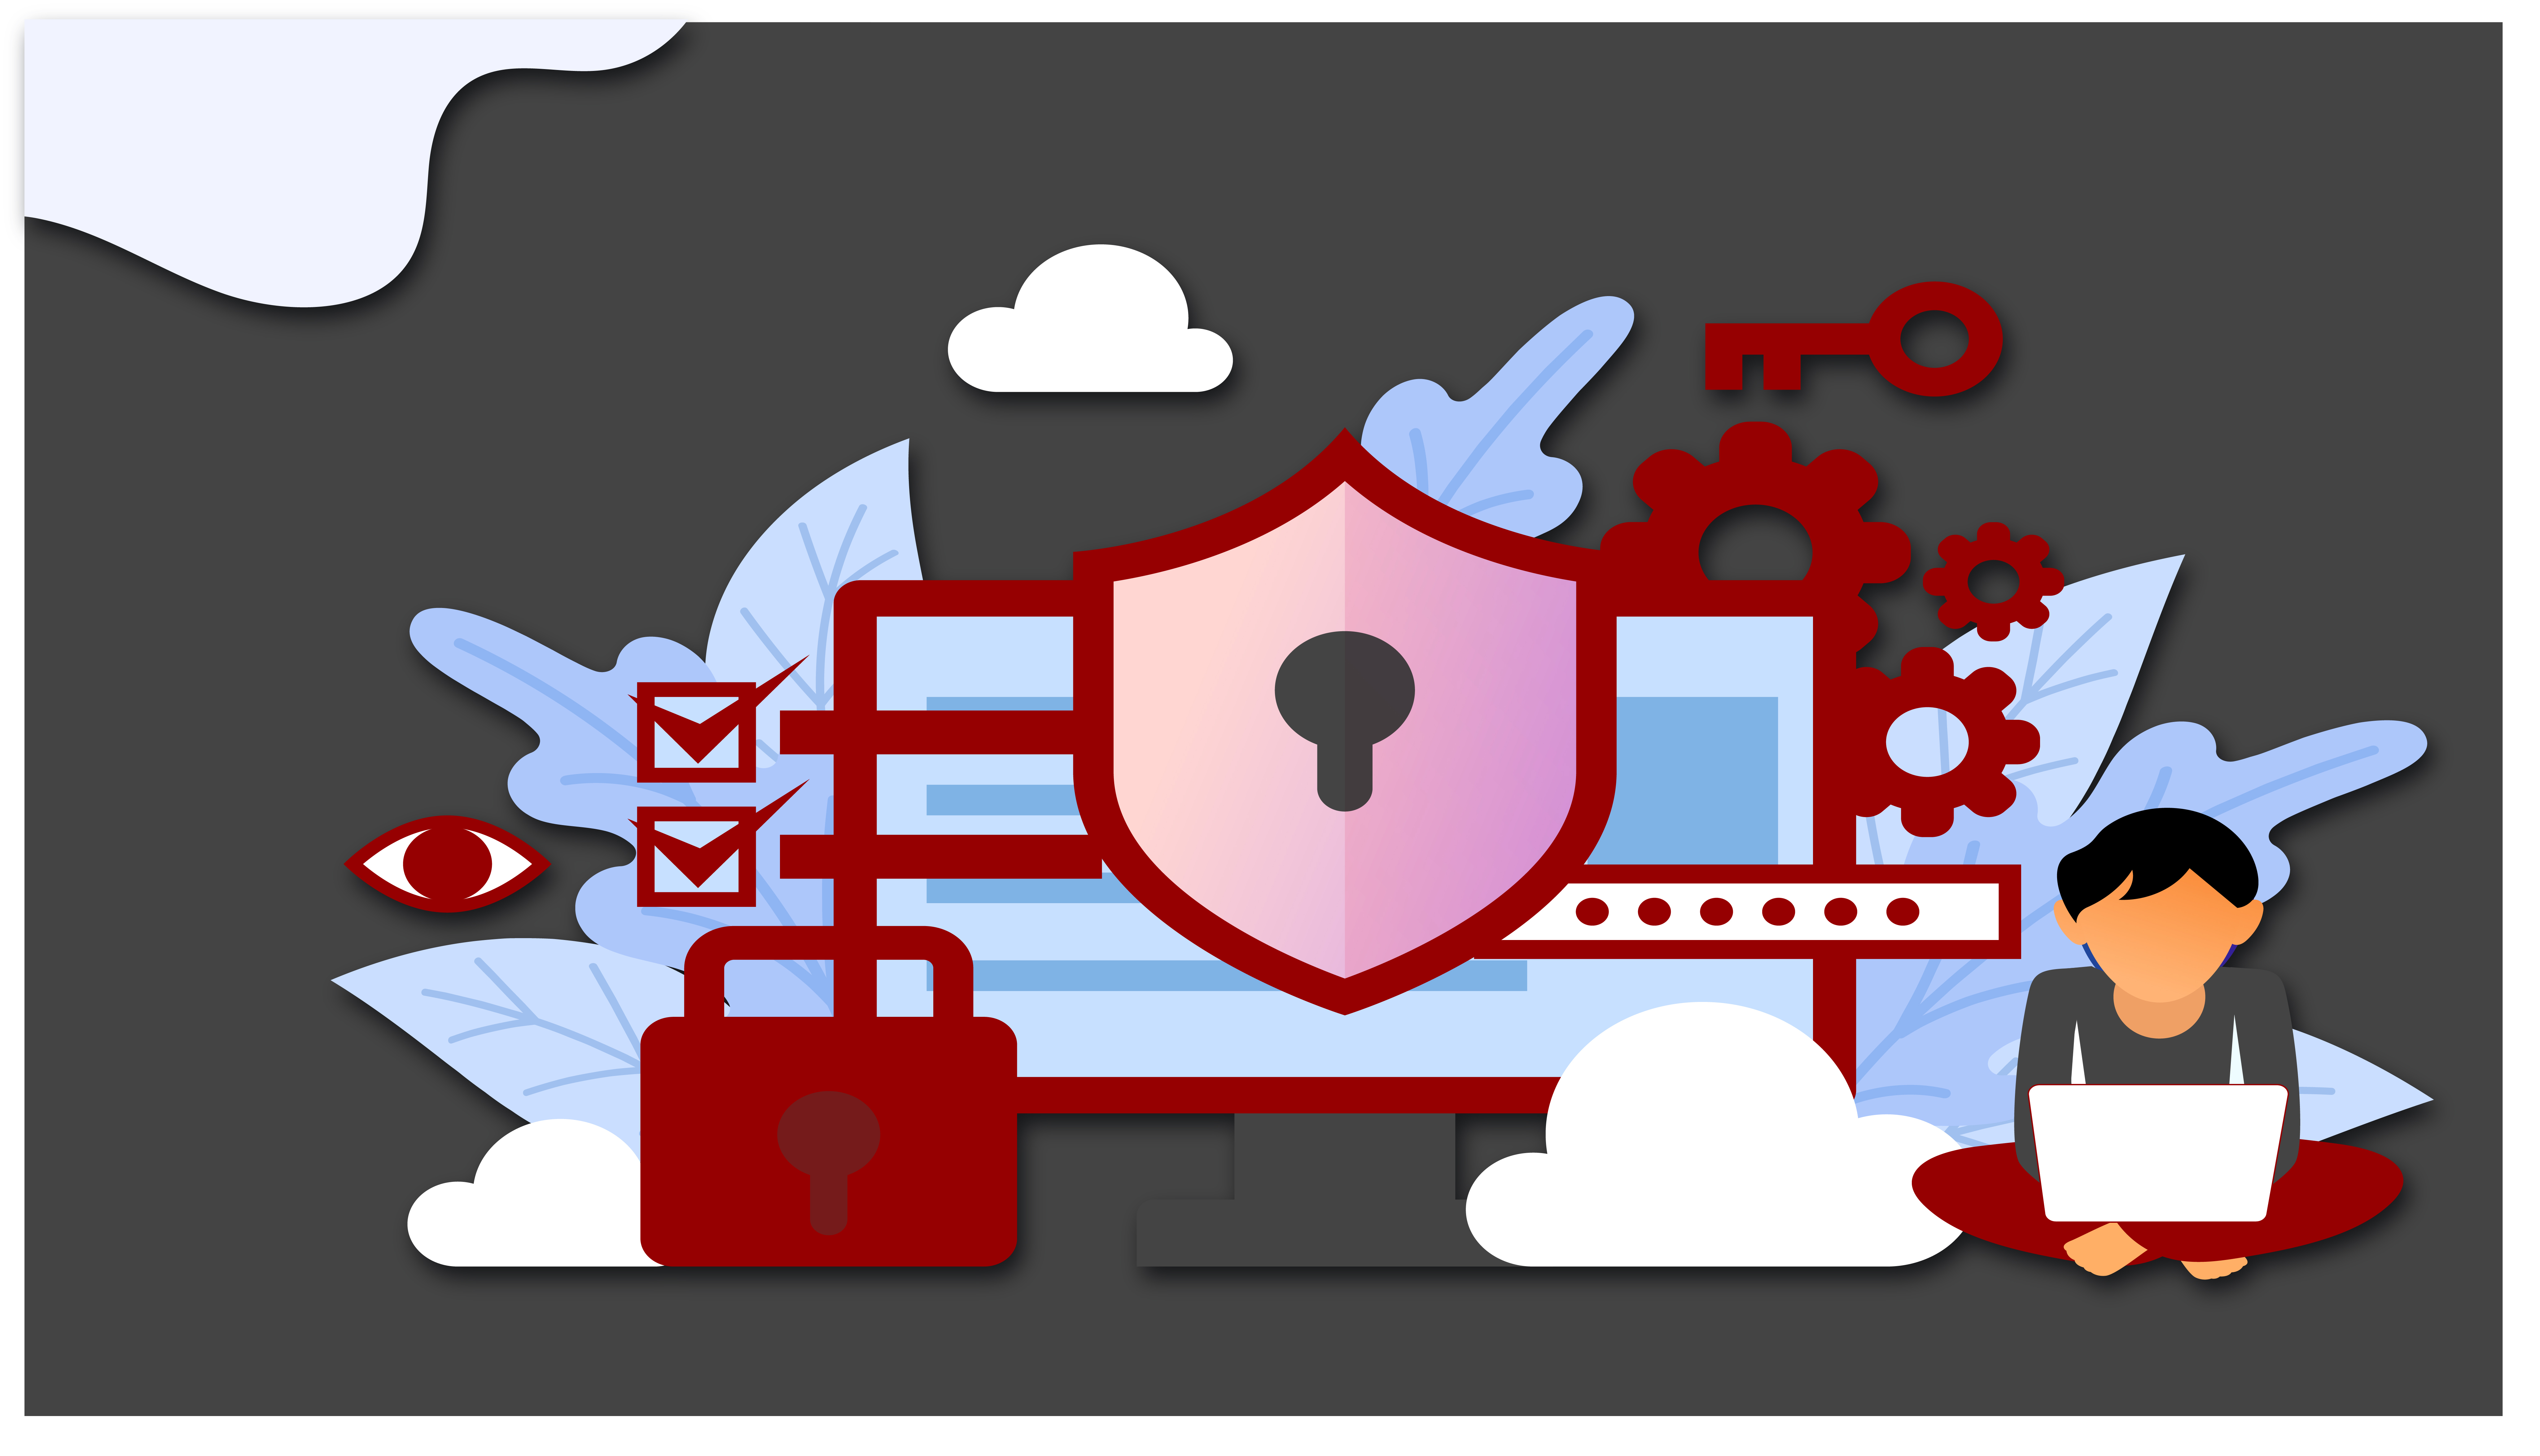 If a hacker attacks your network we can help to clean it up – 'corePHP' web security – hacker trying to get into network